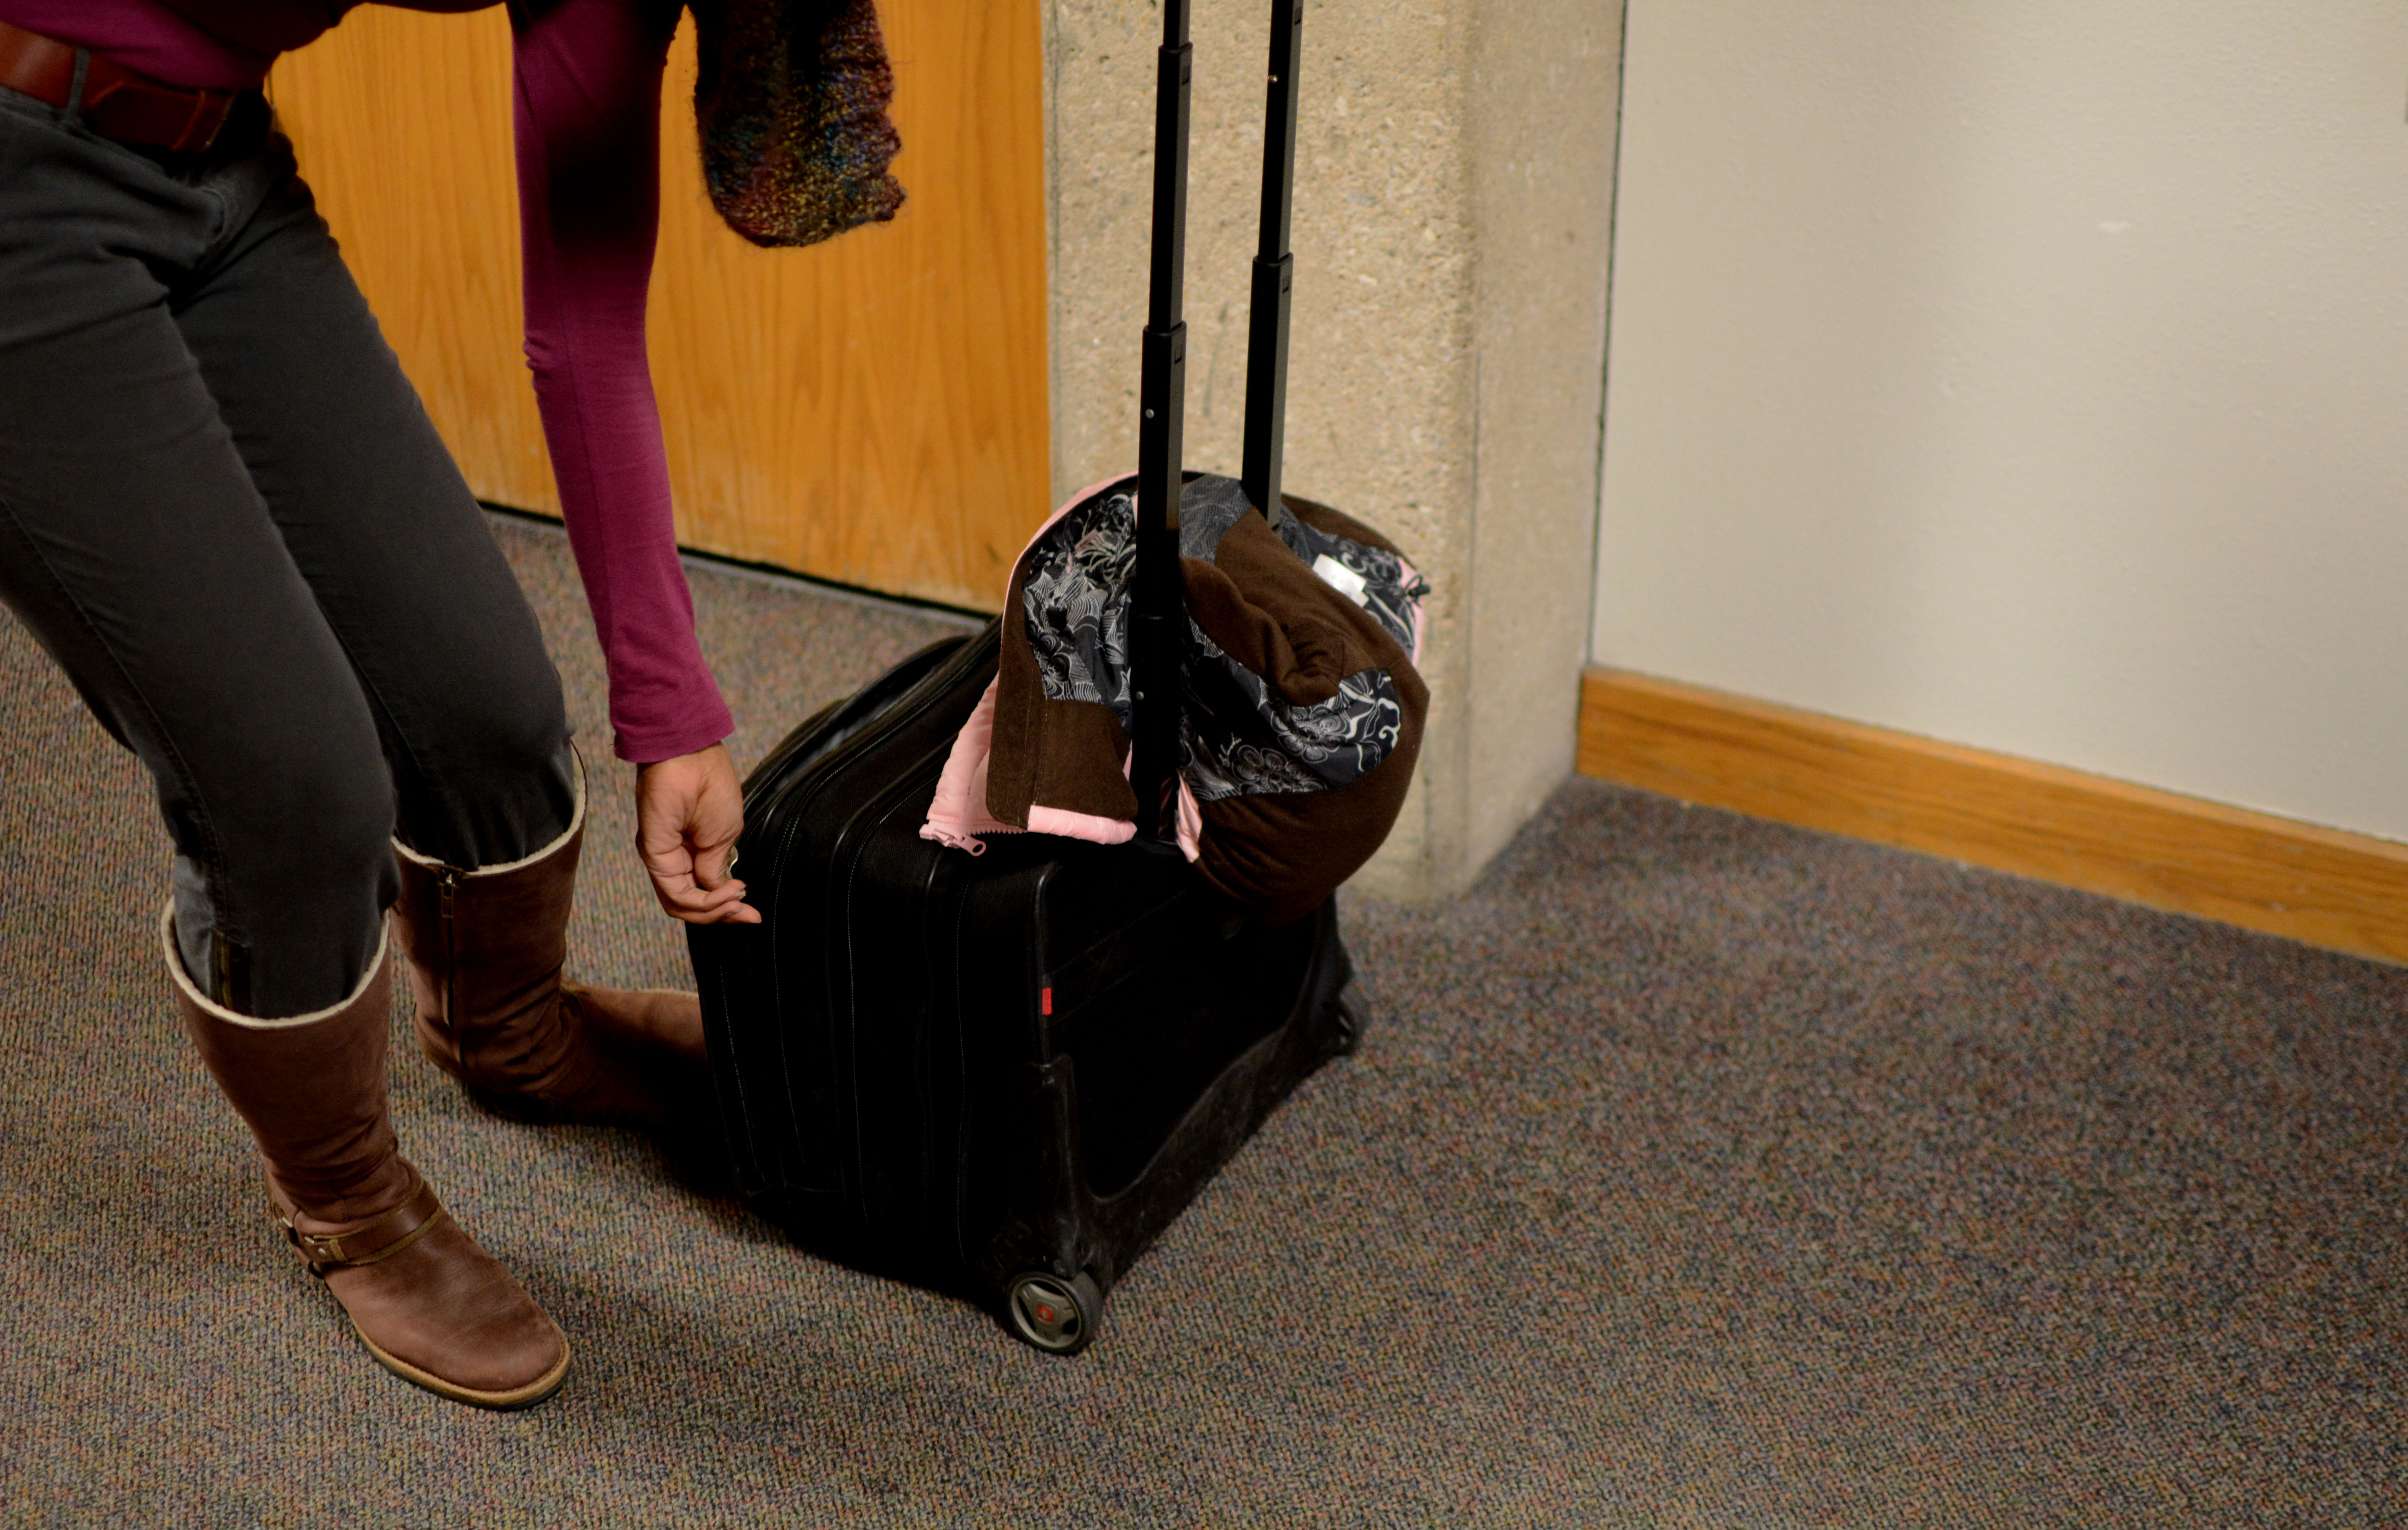 The wheel deal with rolling backpacks and student opinion   The ...